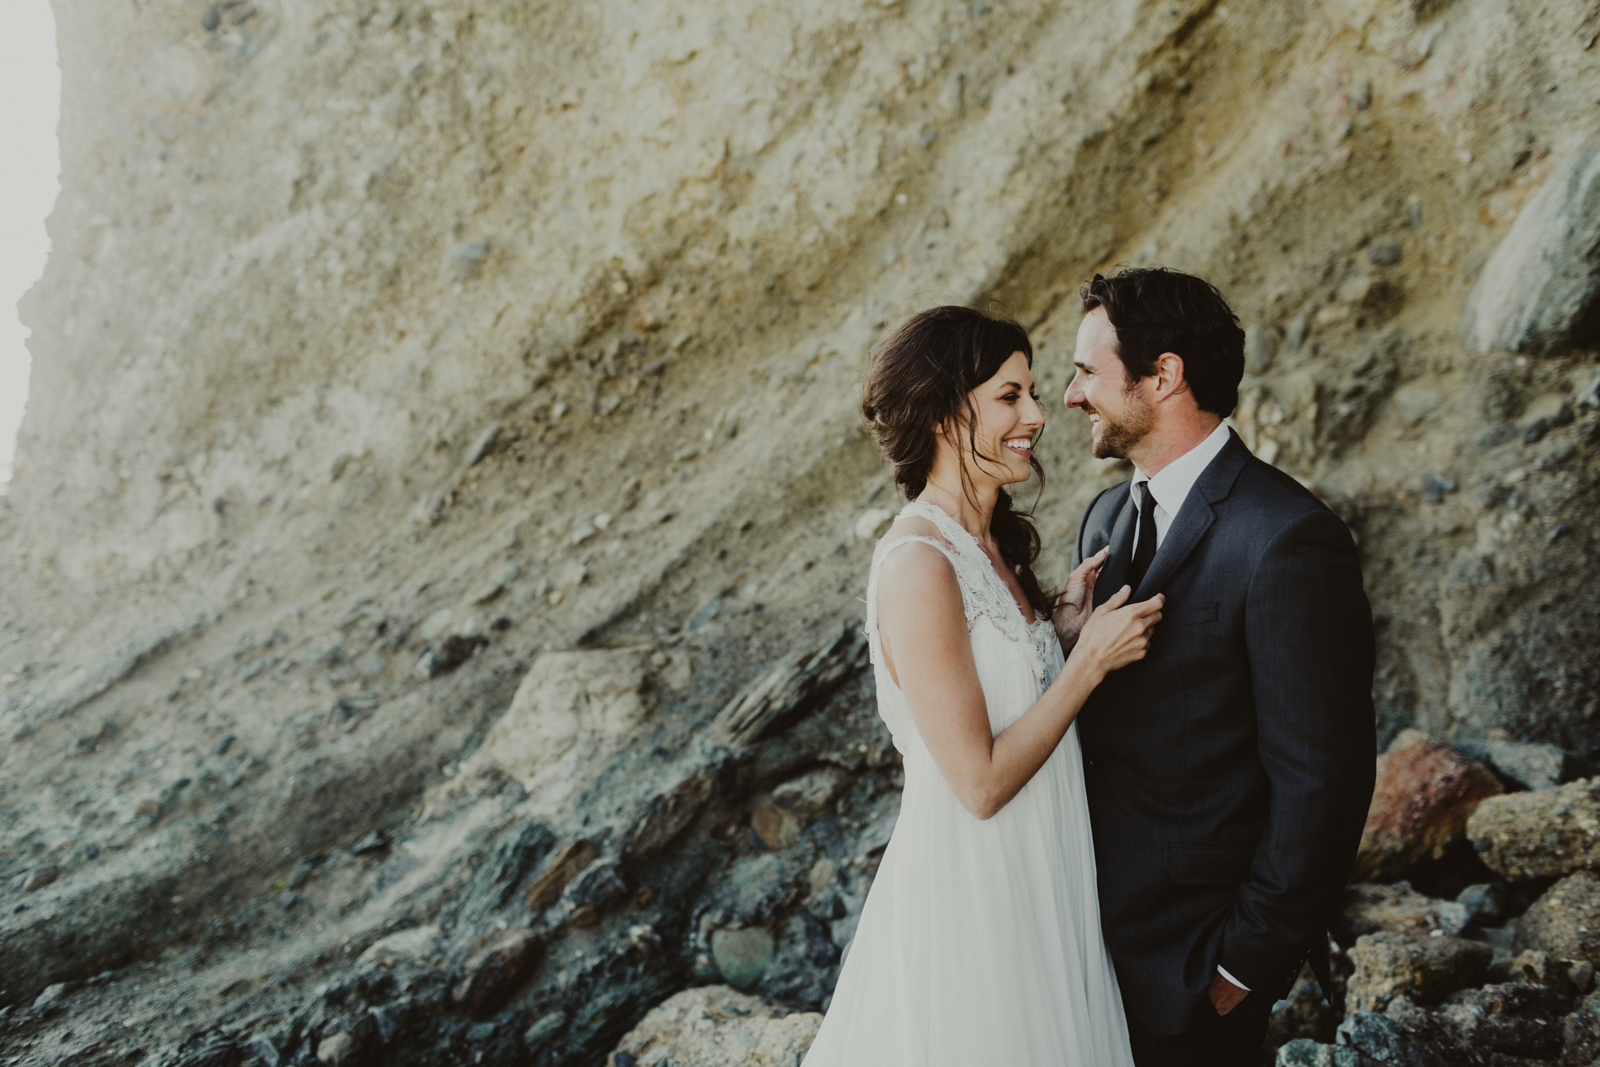 Kevin+Angie-Married-Blog-00036.jpg